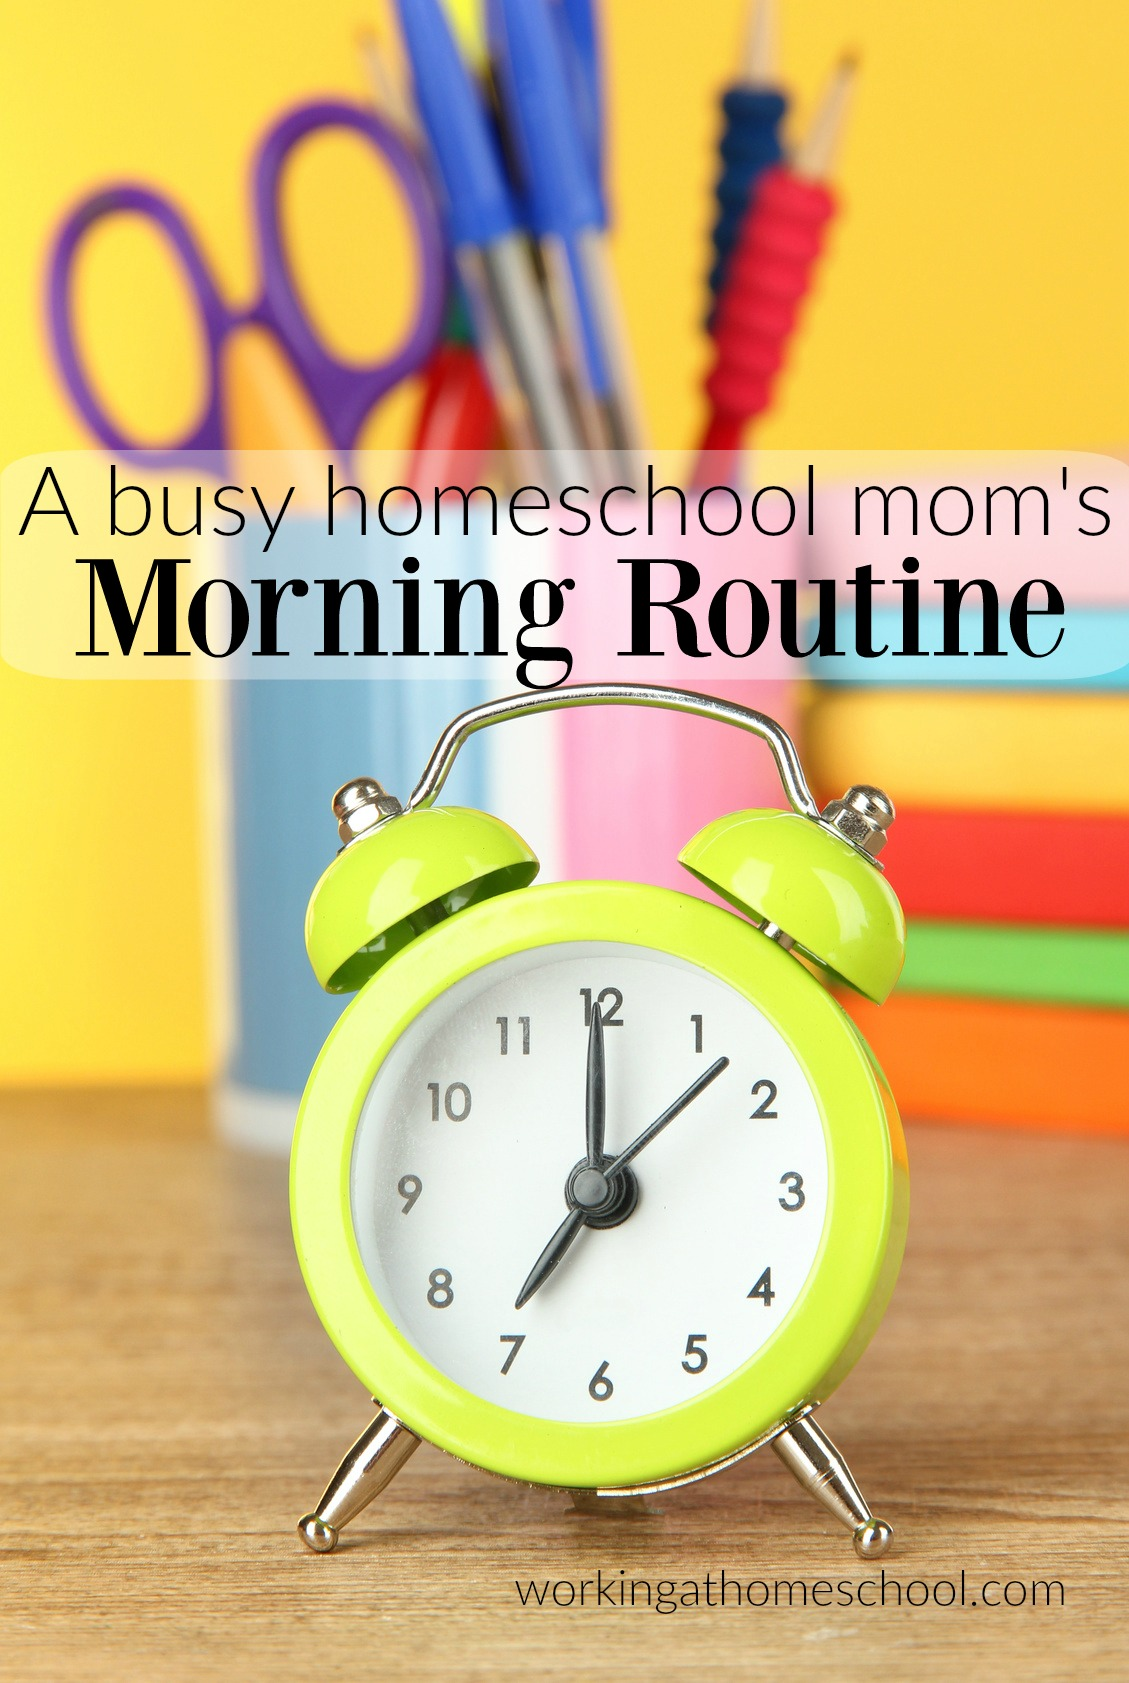 Morning Routine for Homeschool Moms